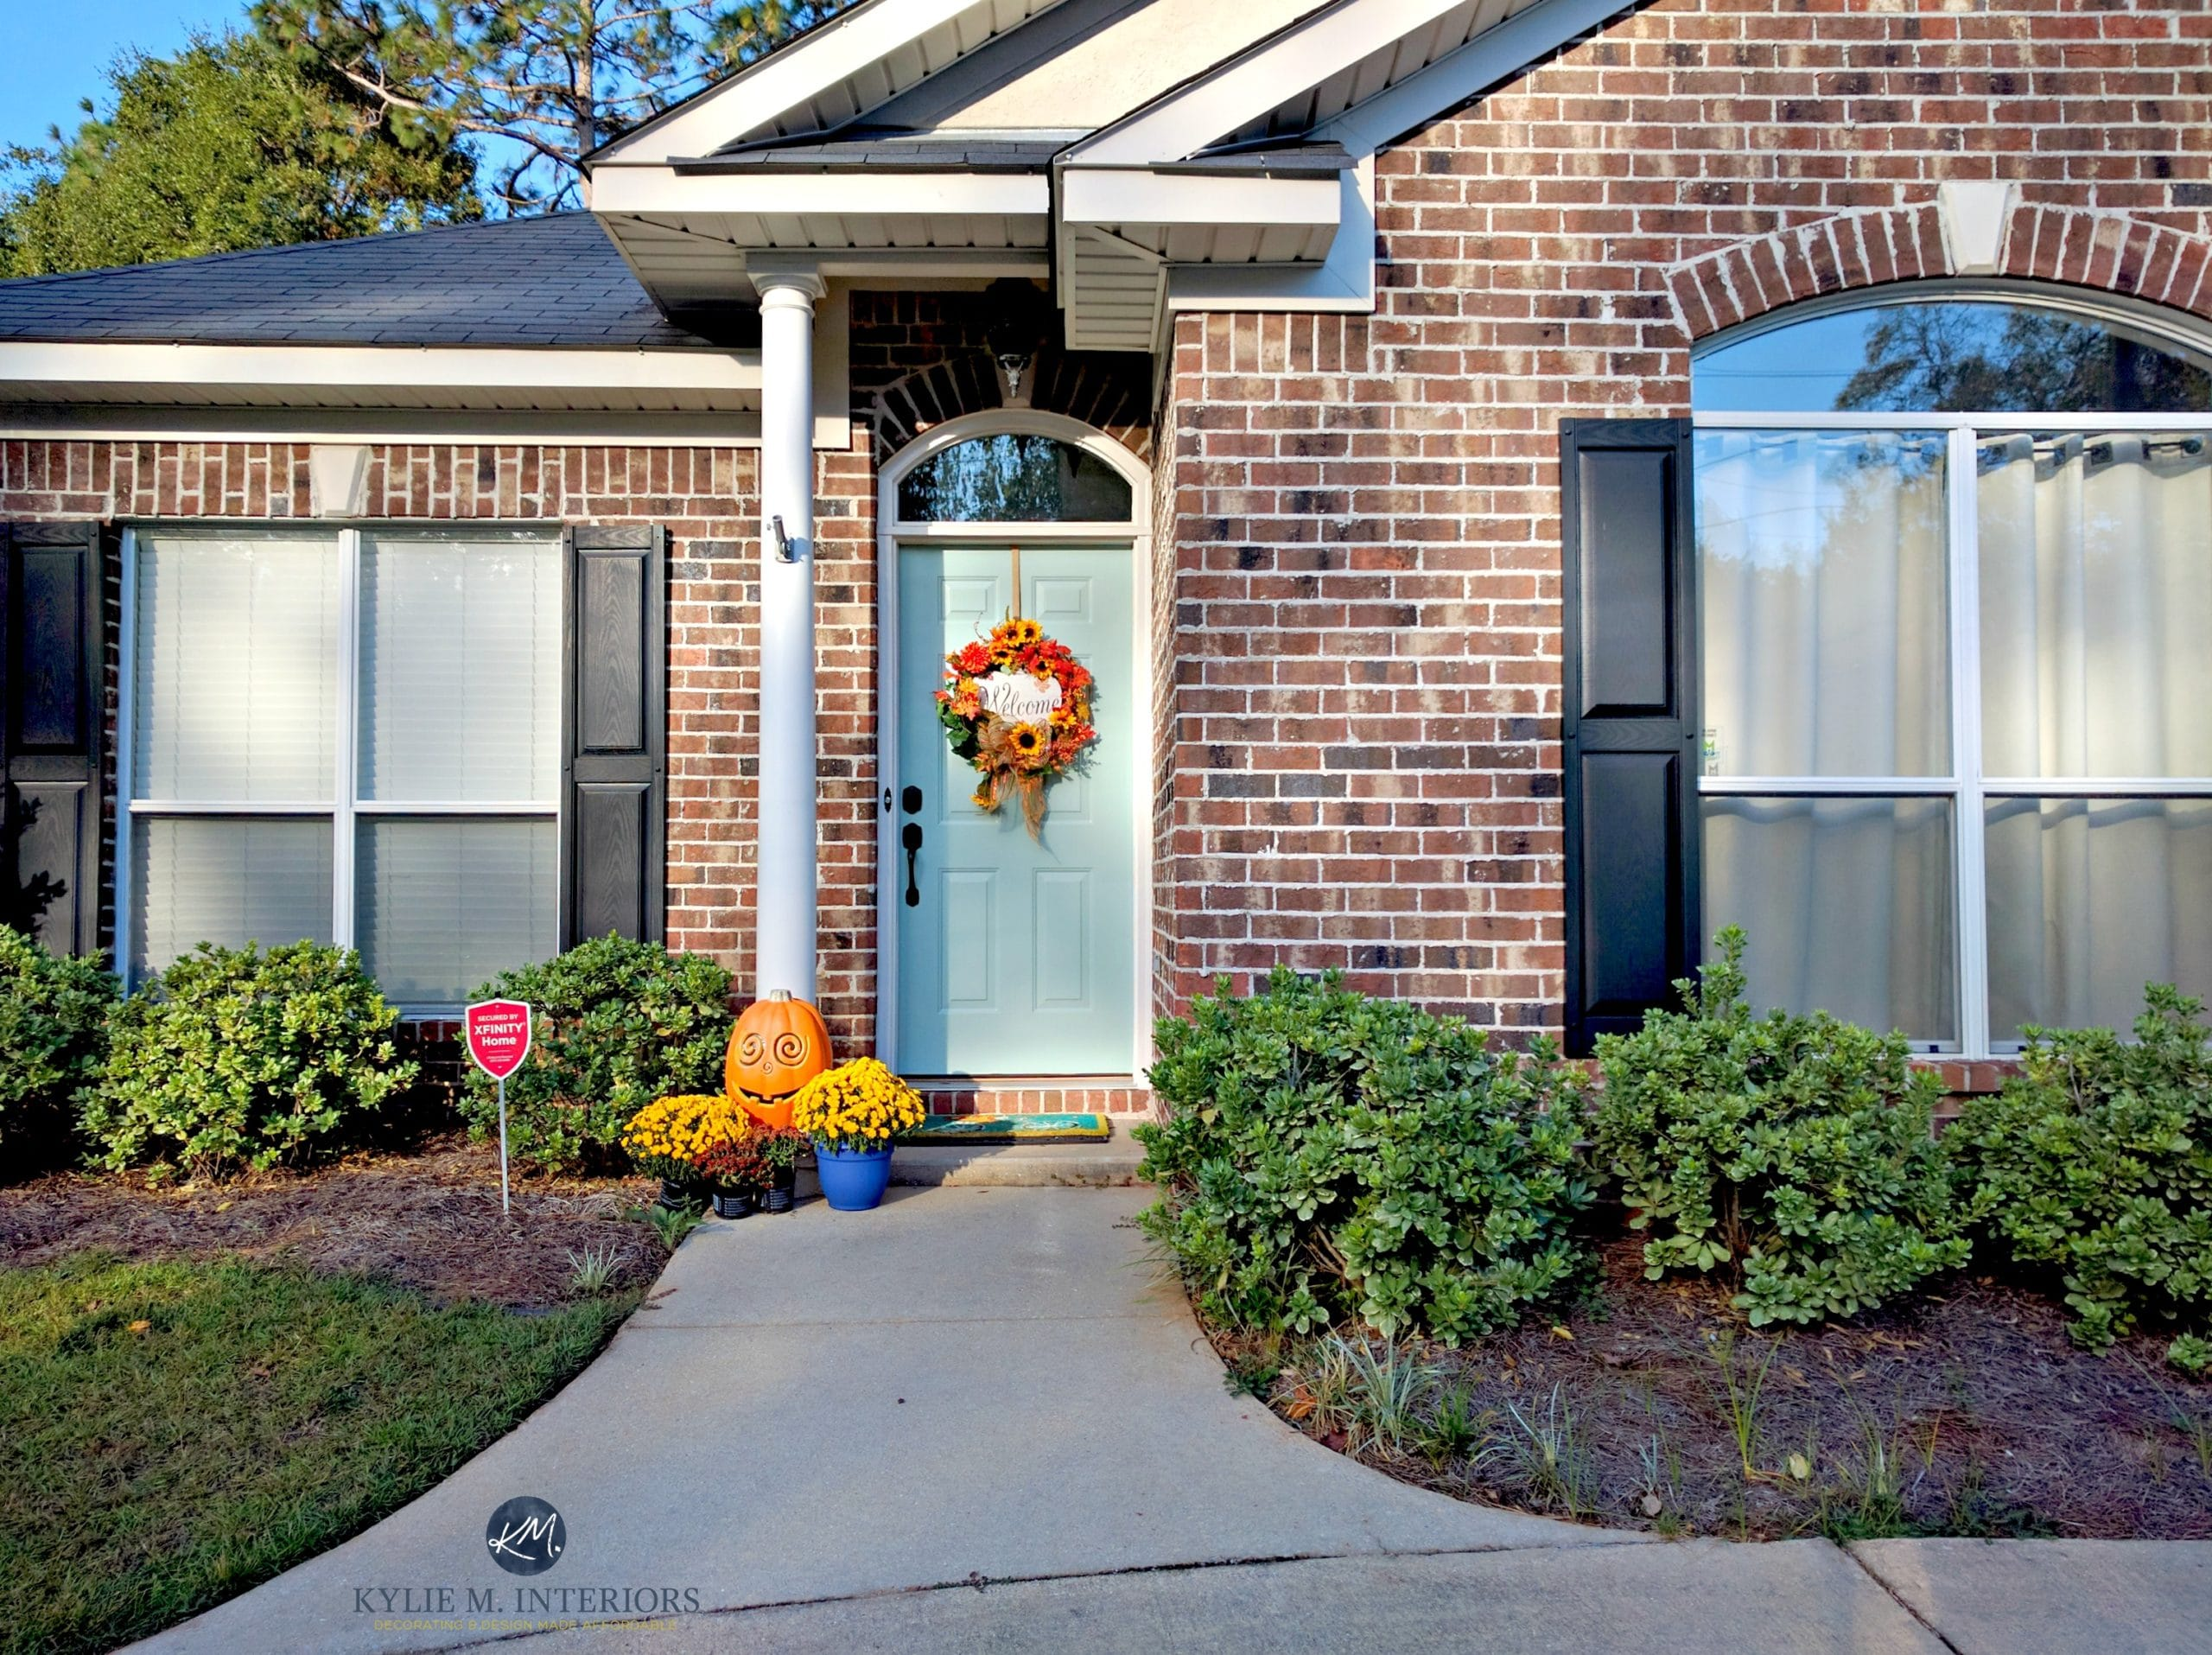 Black front door with black shutters - Brick Exterior With Black Shutters Greige Trim And Benjamin Moore Wythe Blue Front Door Kylie M Interiors E Design Edecor And Online Color Consulting